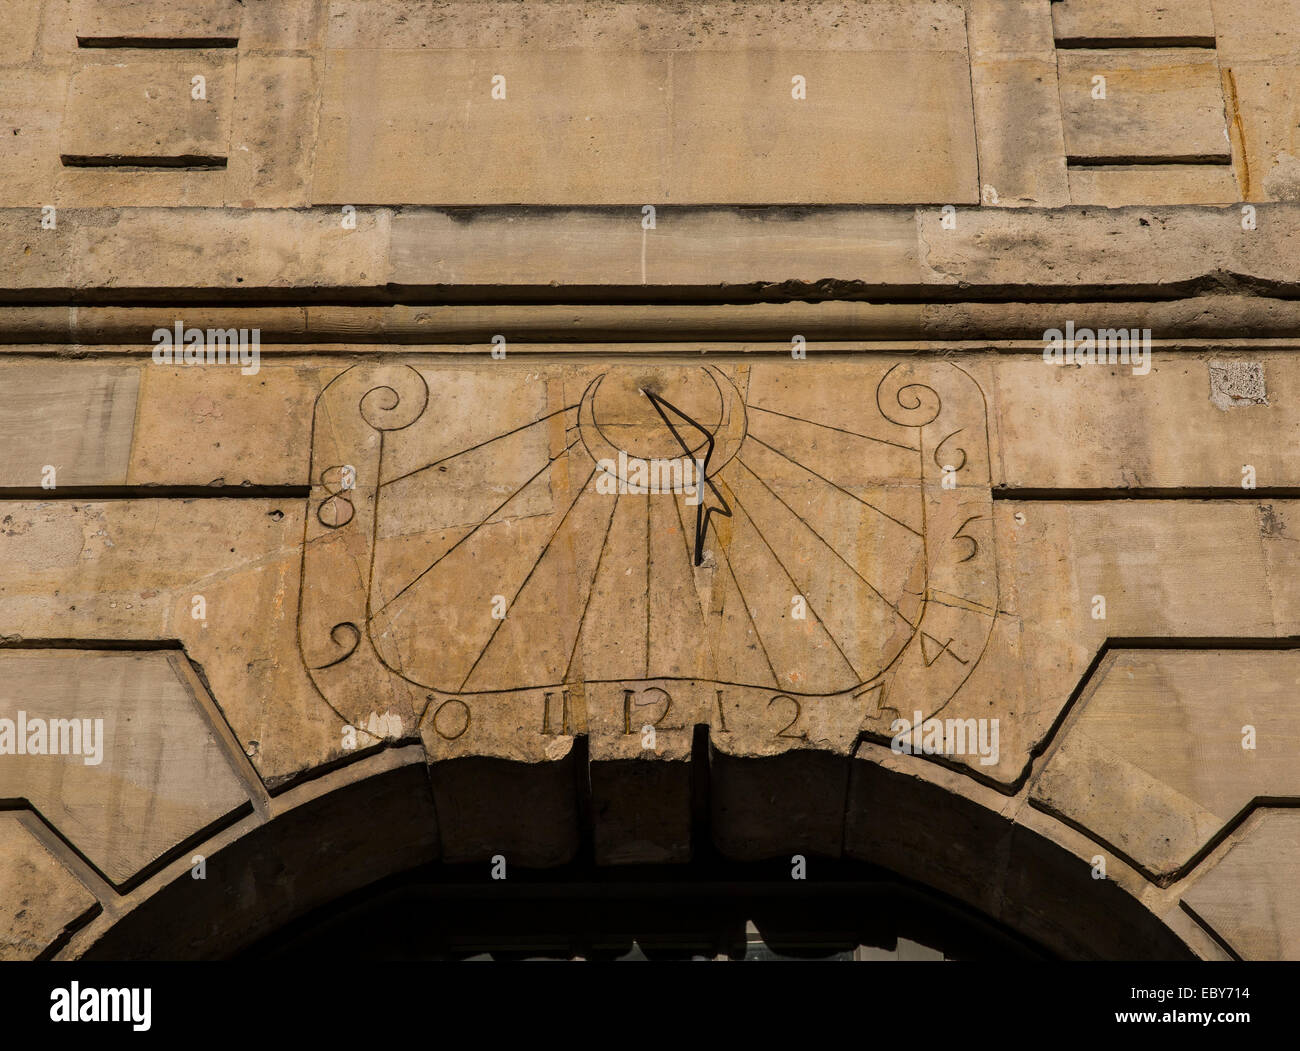 sundial sun dial keeps tells keepng time wall arch - Stock Image